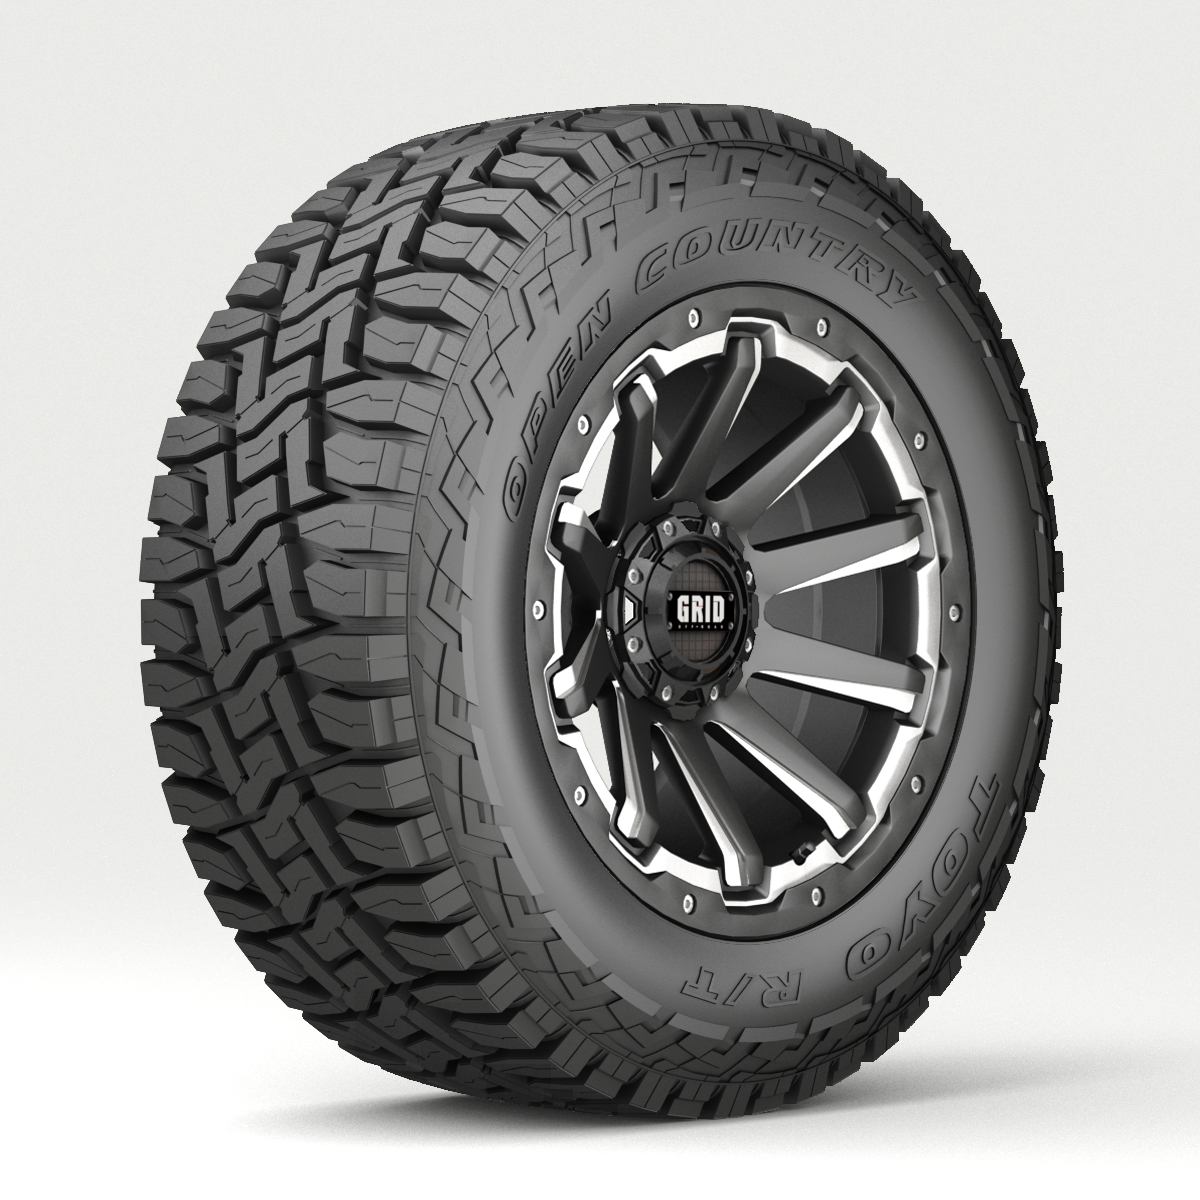 off road wheel and tire 4 3d model 3ds max fbx tga targa icb vda vst pix obj 224457